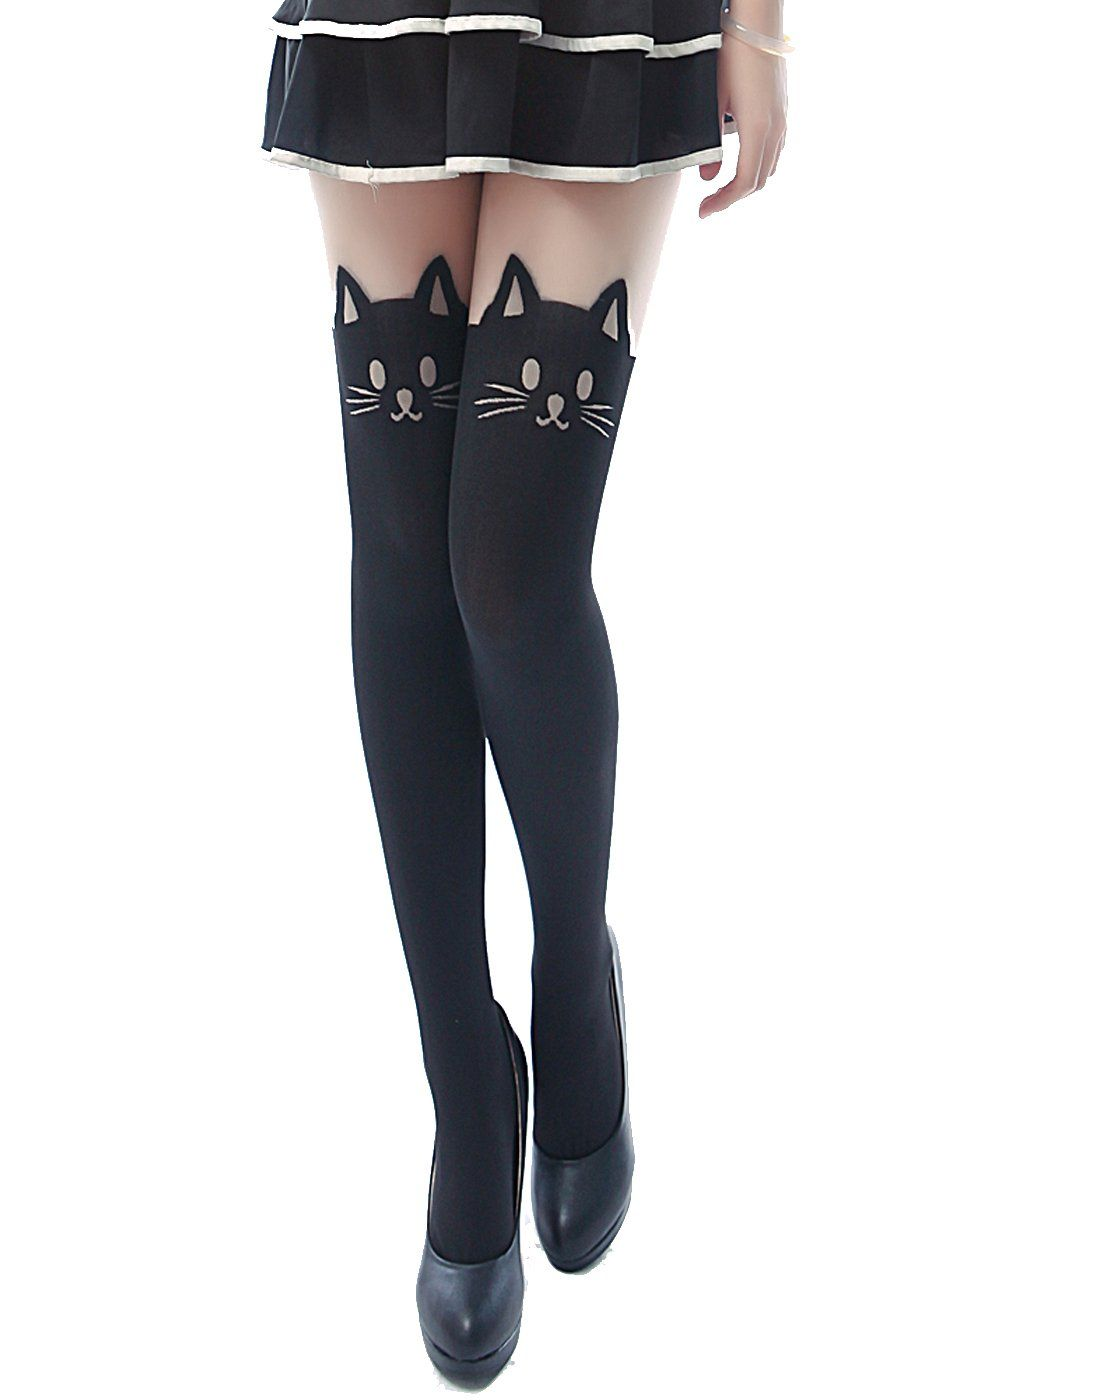 e568a8d6a5d07 Sexy Fashion Design Pattern Pantyhose Stockings Tights - by HDE (Neko Cat  Mock Thigh Highs) at Amazon Women's Clothing store: